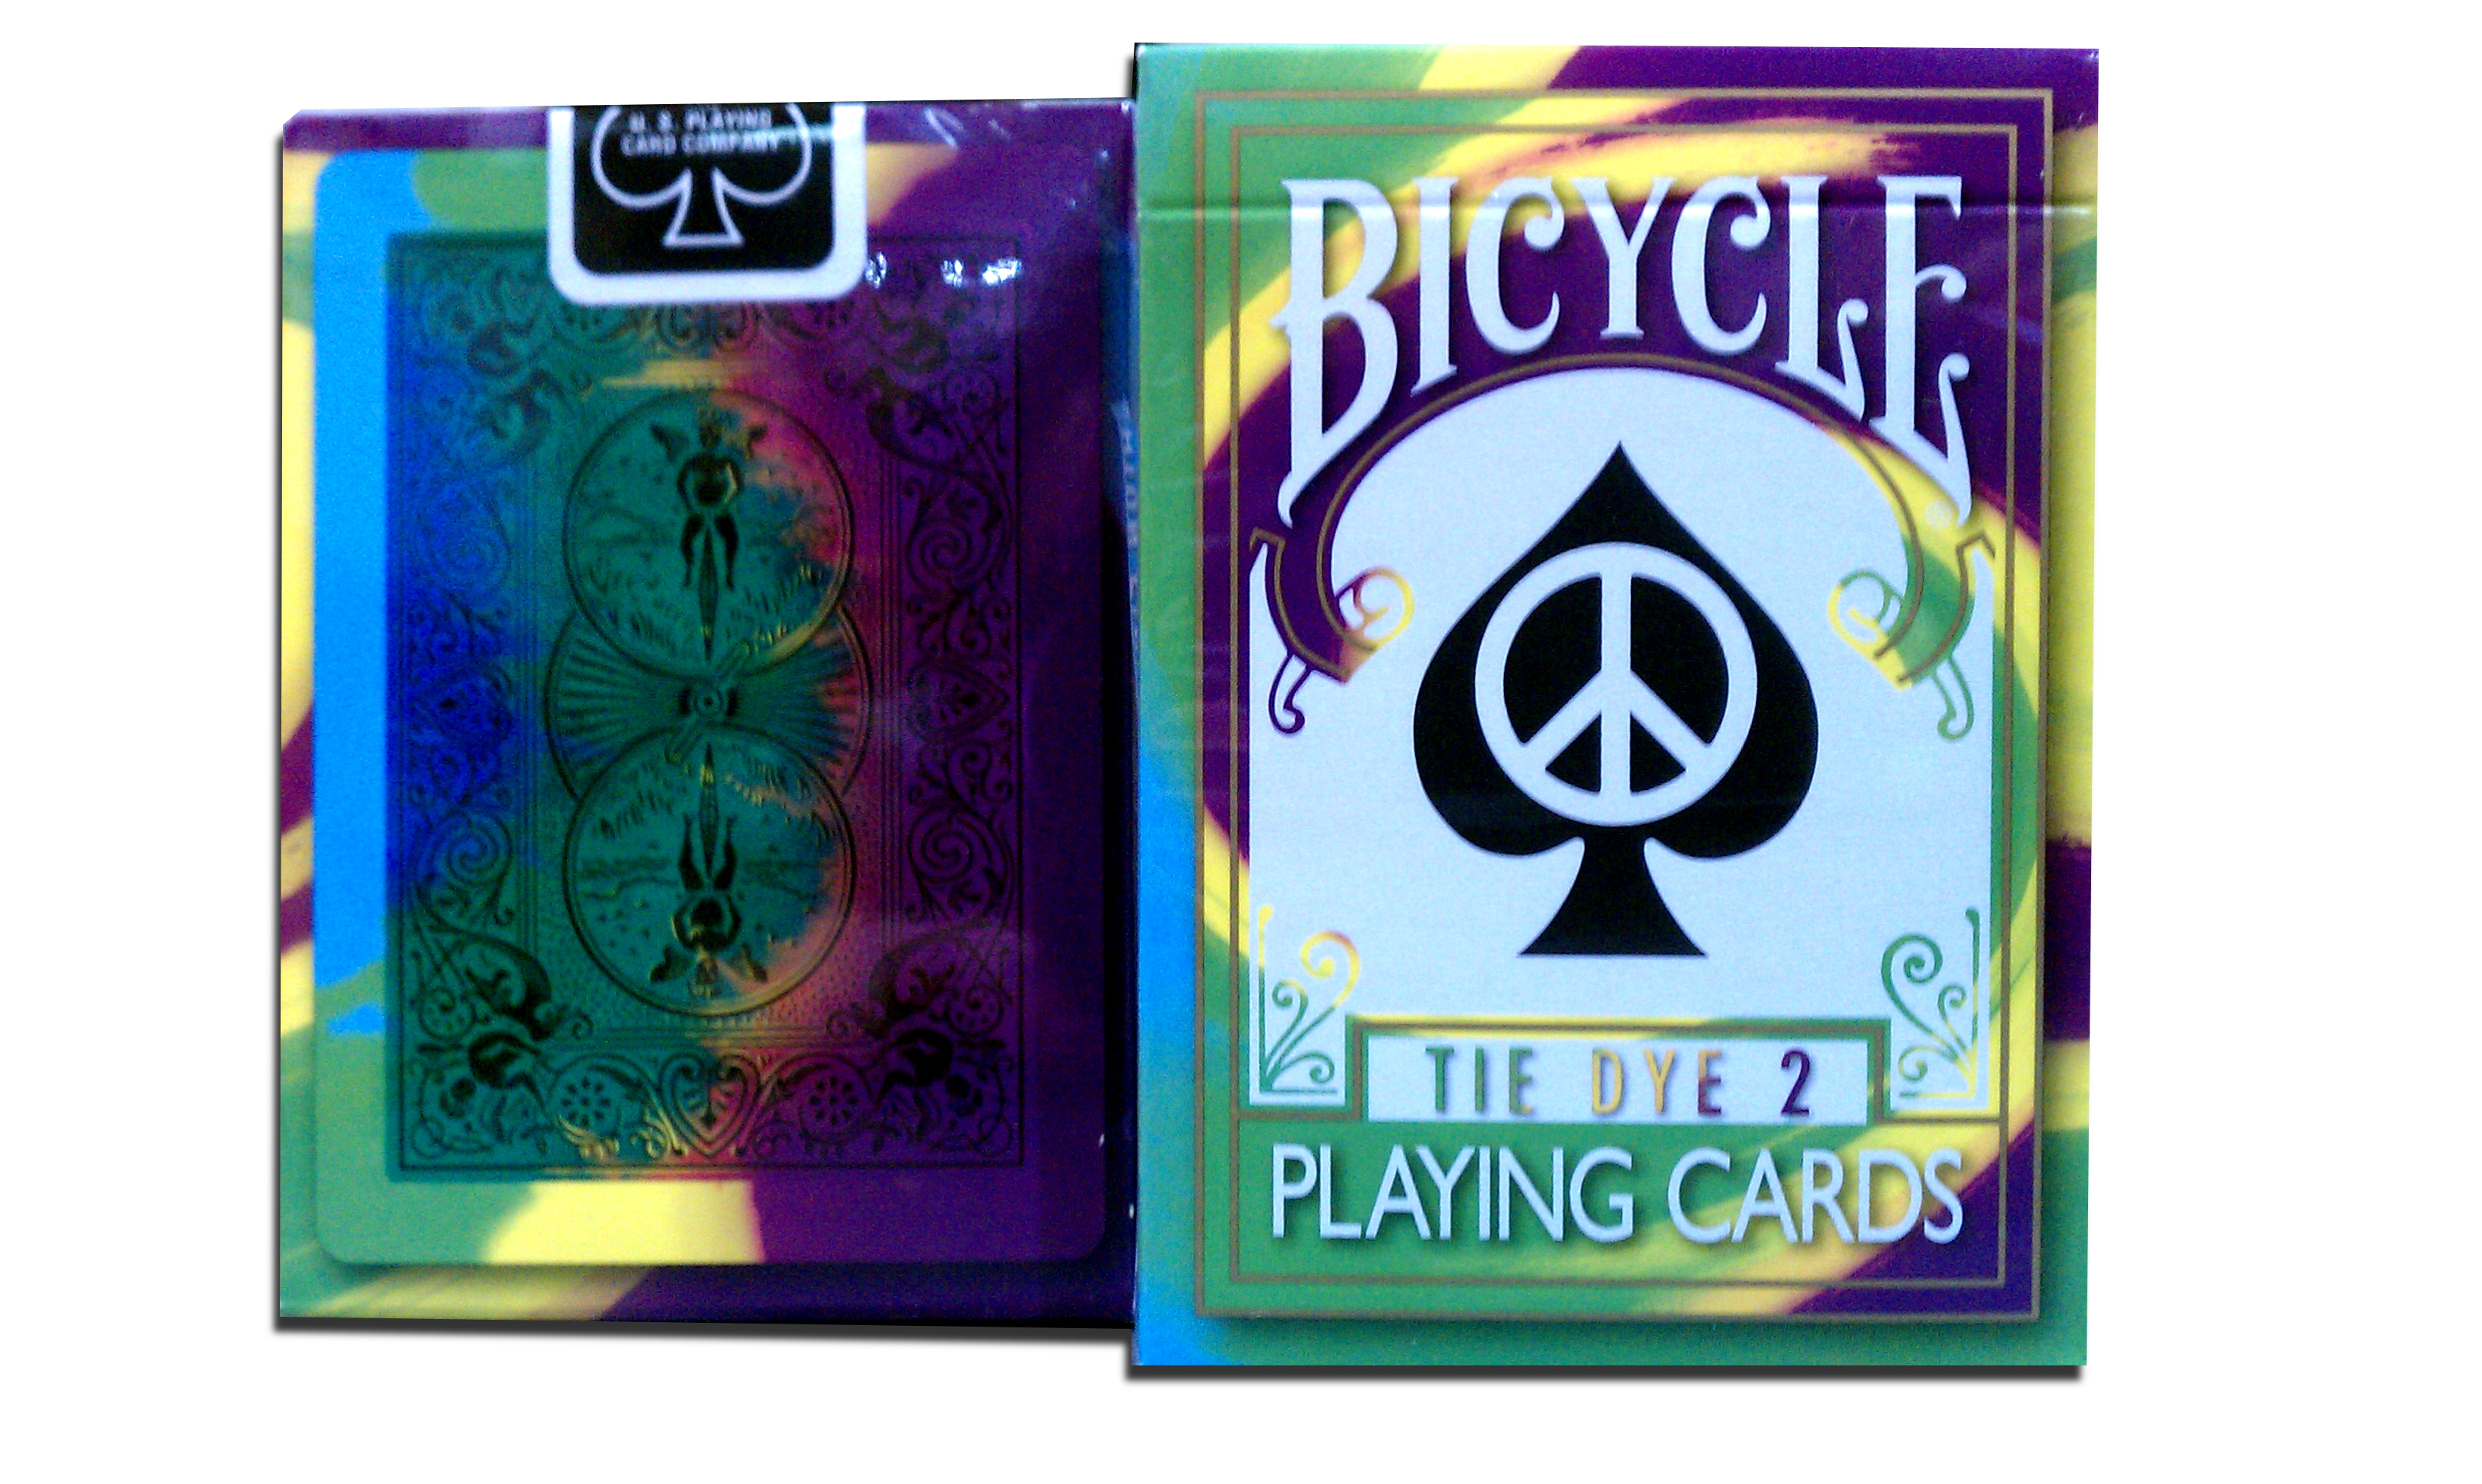 2nd Edition Bicycle Tie Dye 2 Playing Cards Magic collectible playing cards, merz67 exclusives